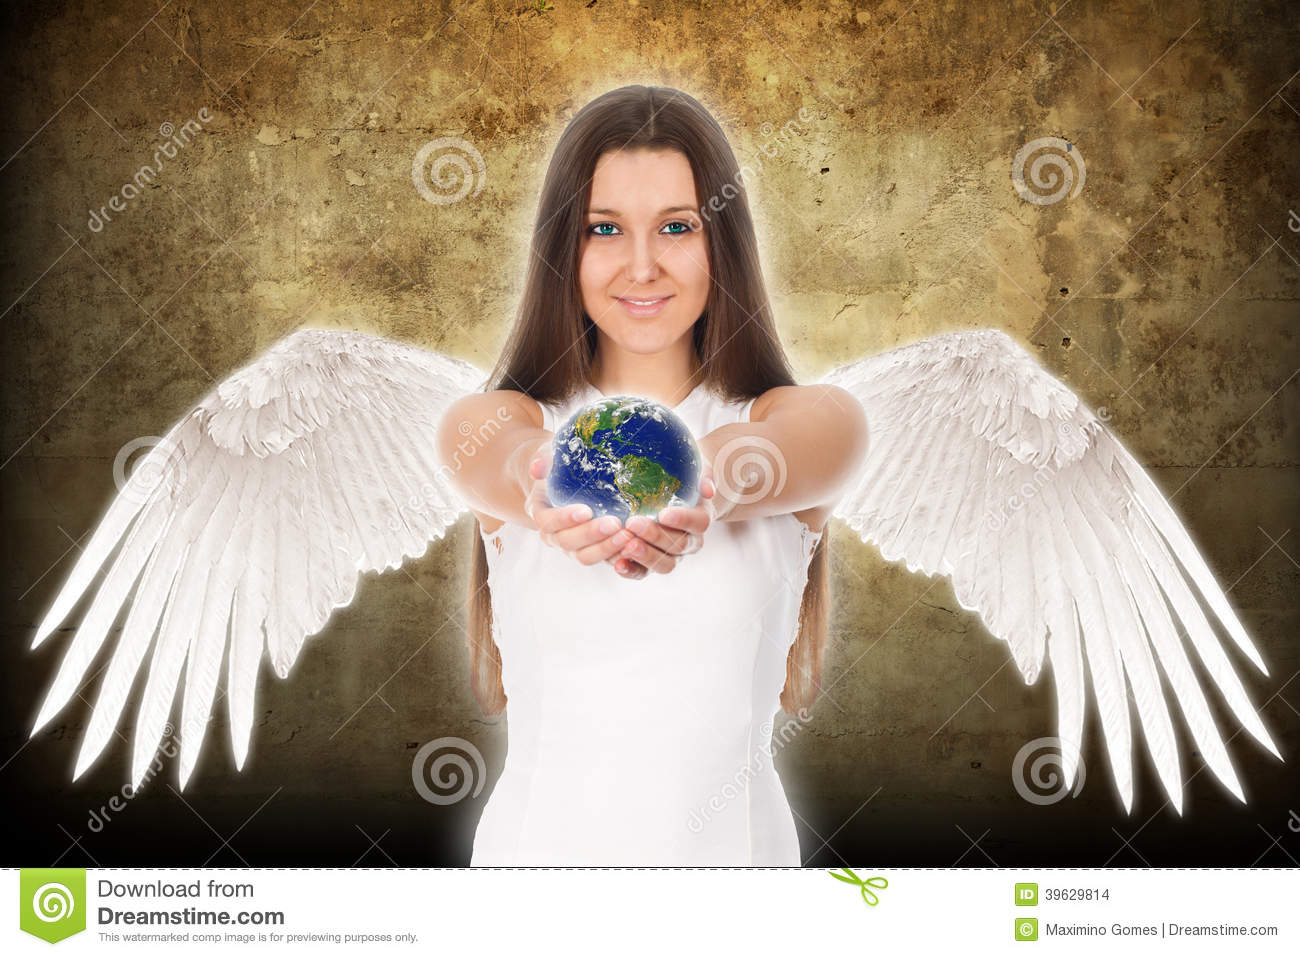 Young angel woman holding Earth in hands